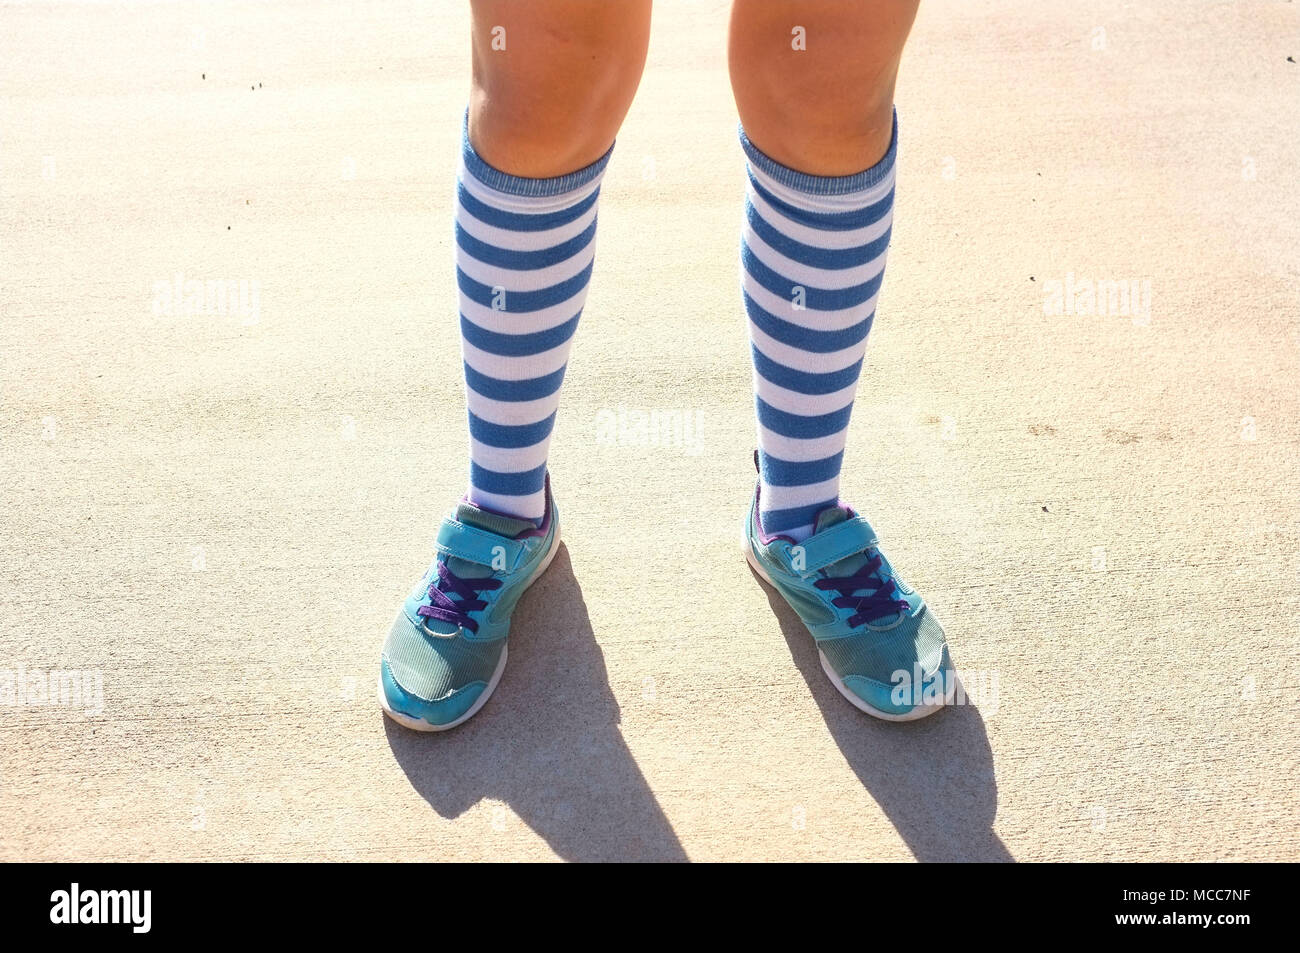 lower-legs-of-a-young-girl-wearing-sport-shoes-and-long-striped-socks-MCC7NF.jpg